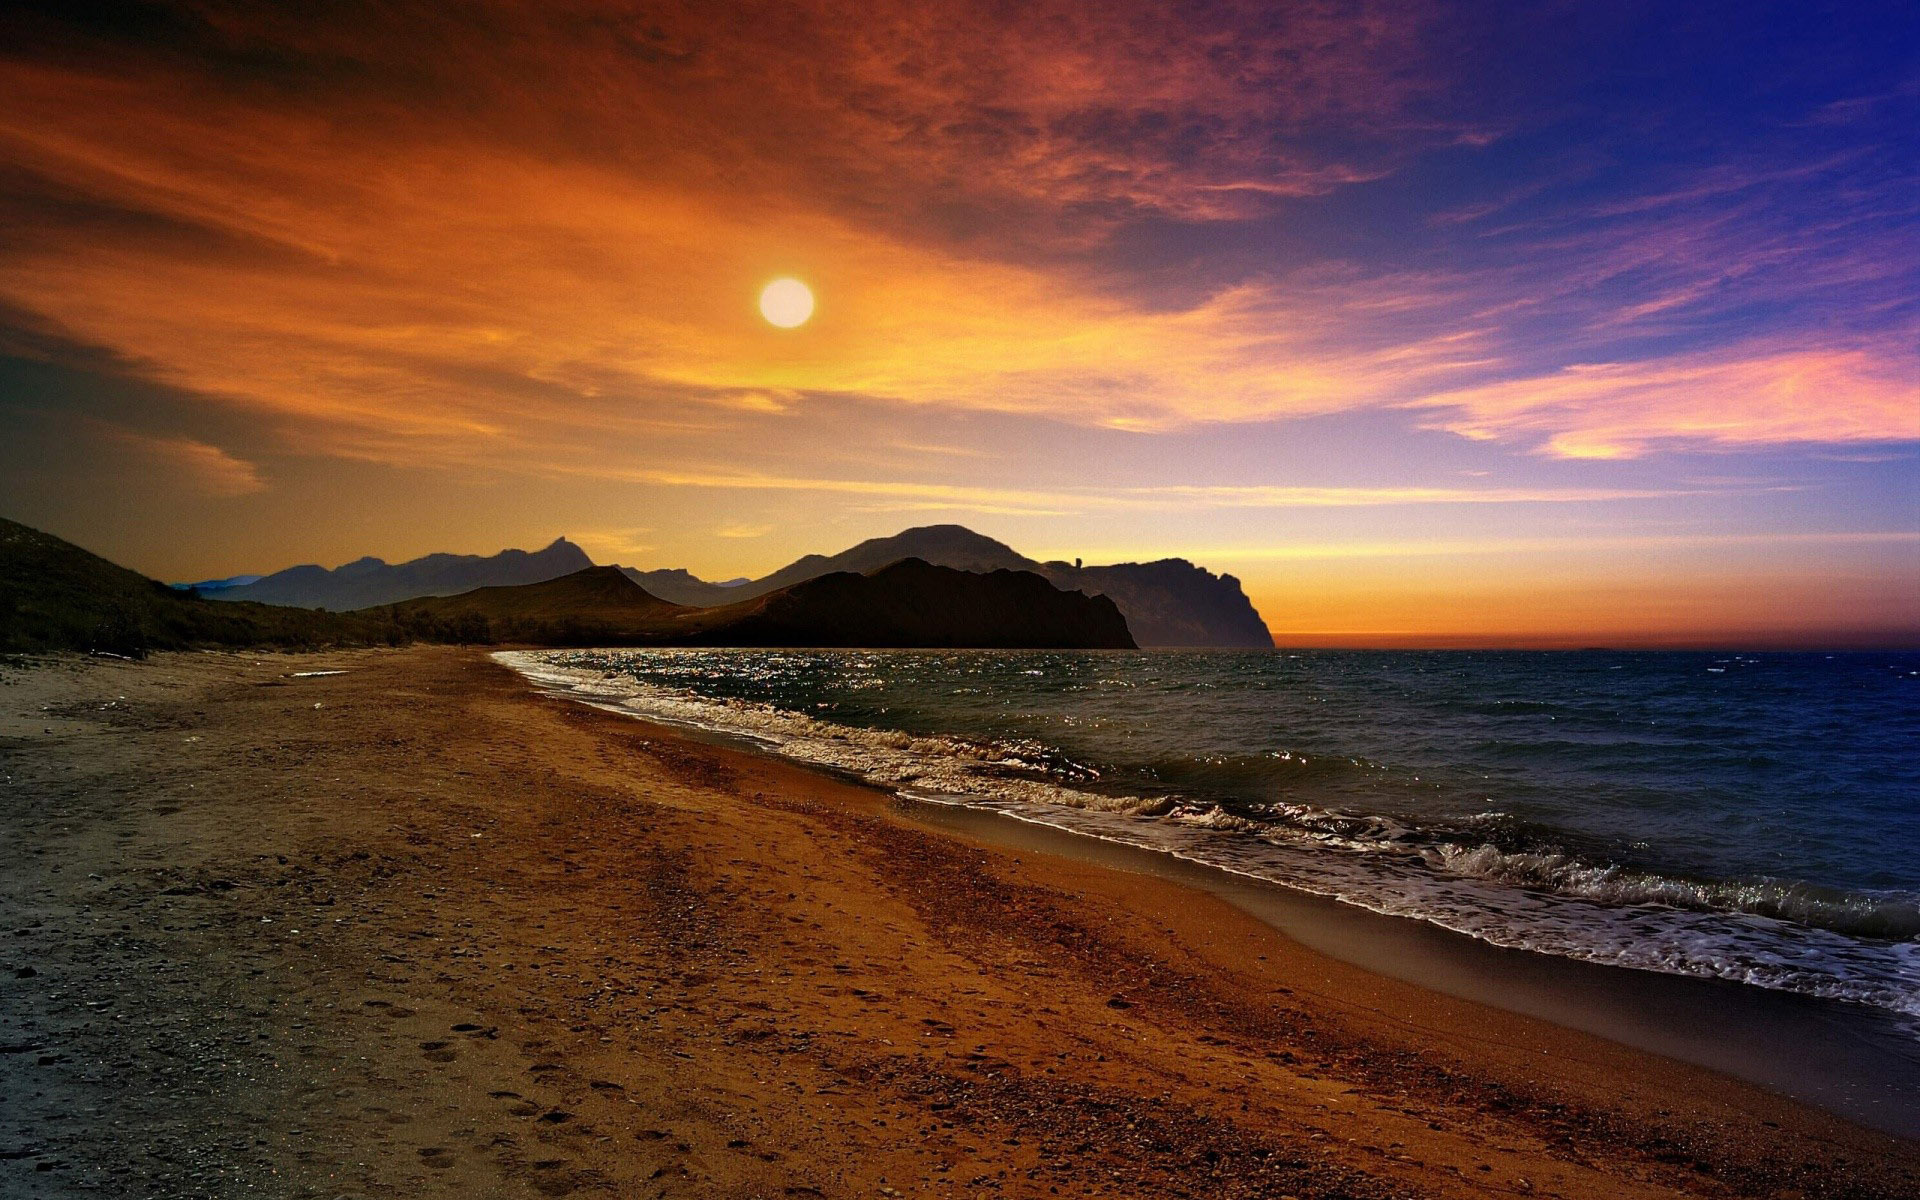 Sunset on a beach in Crimea